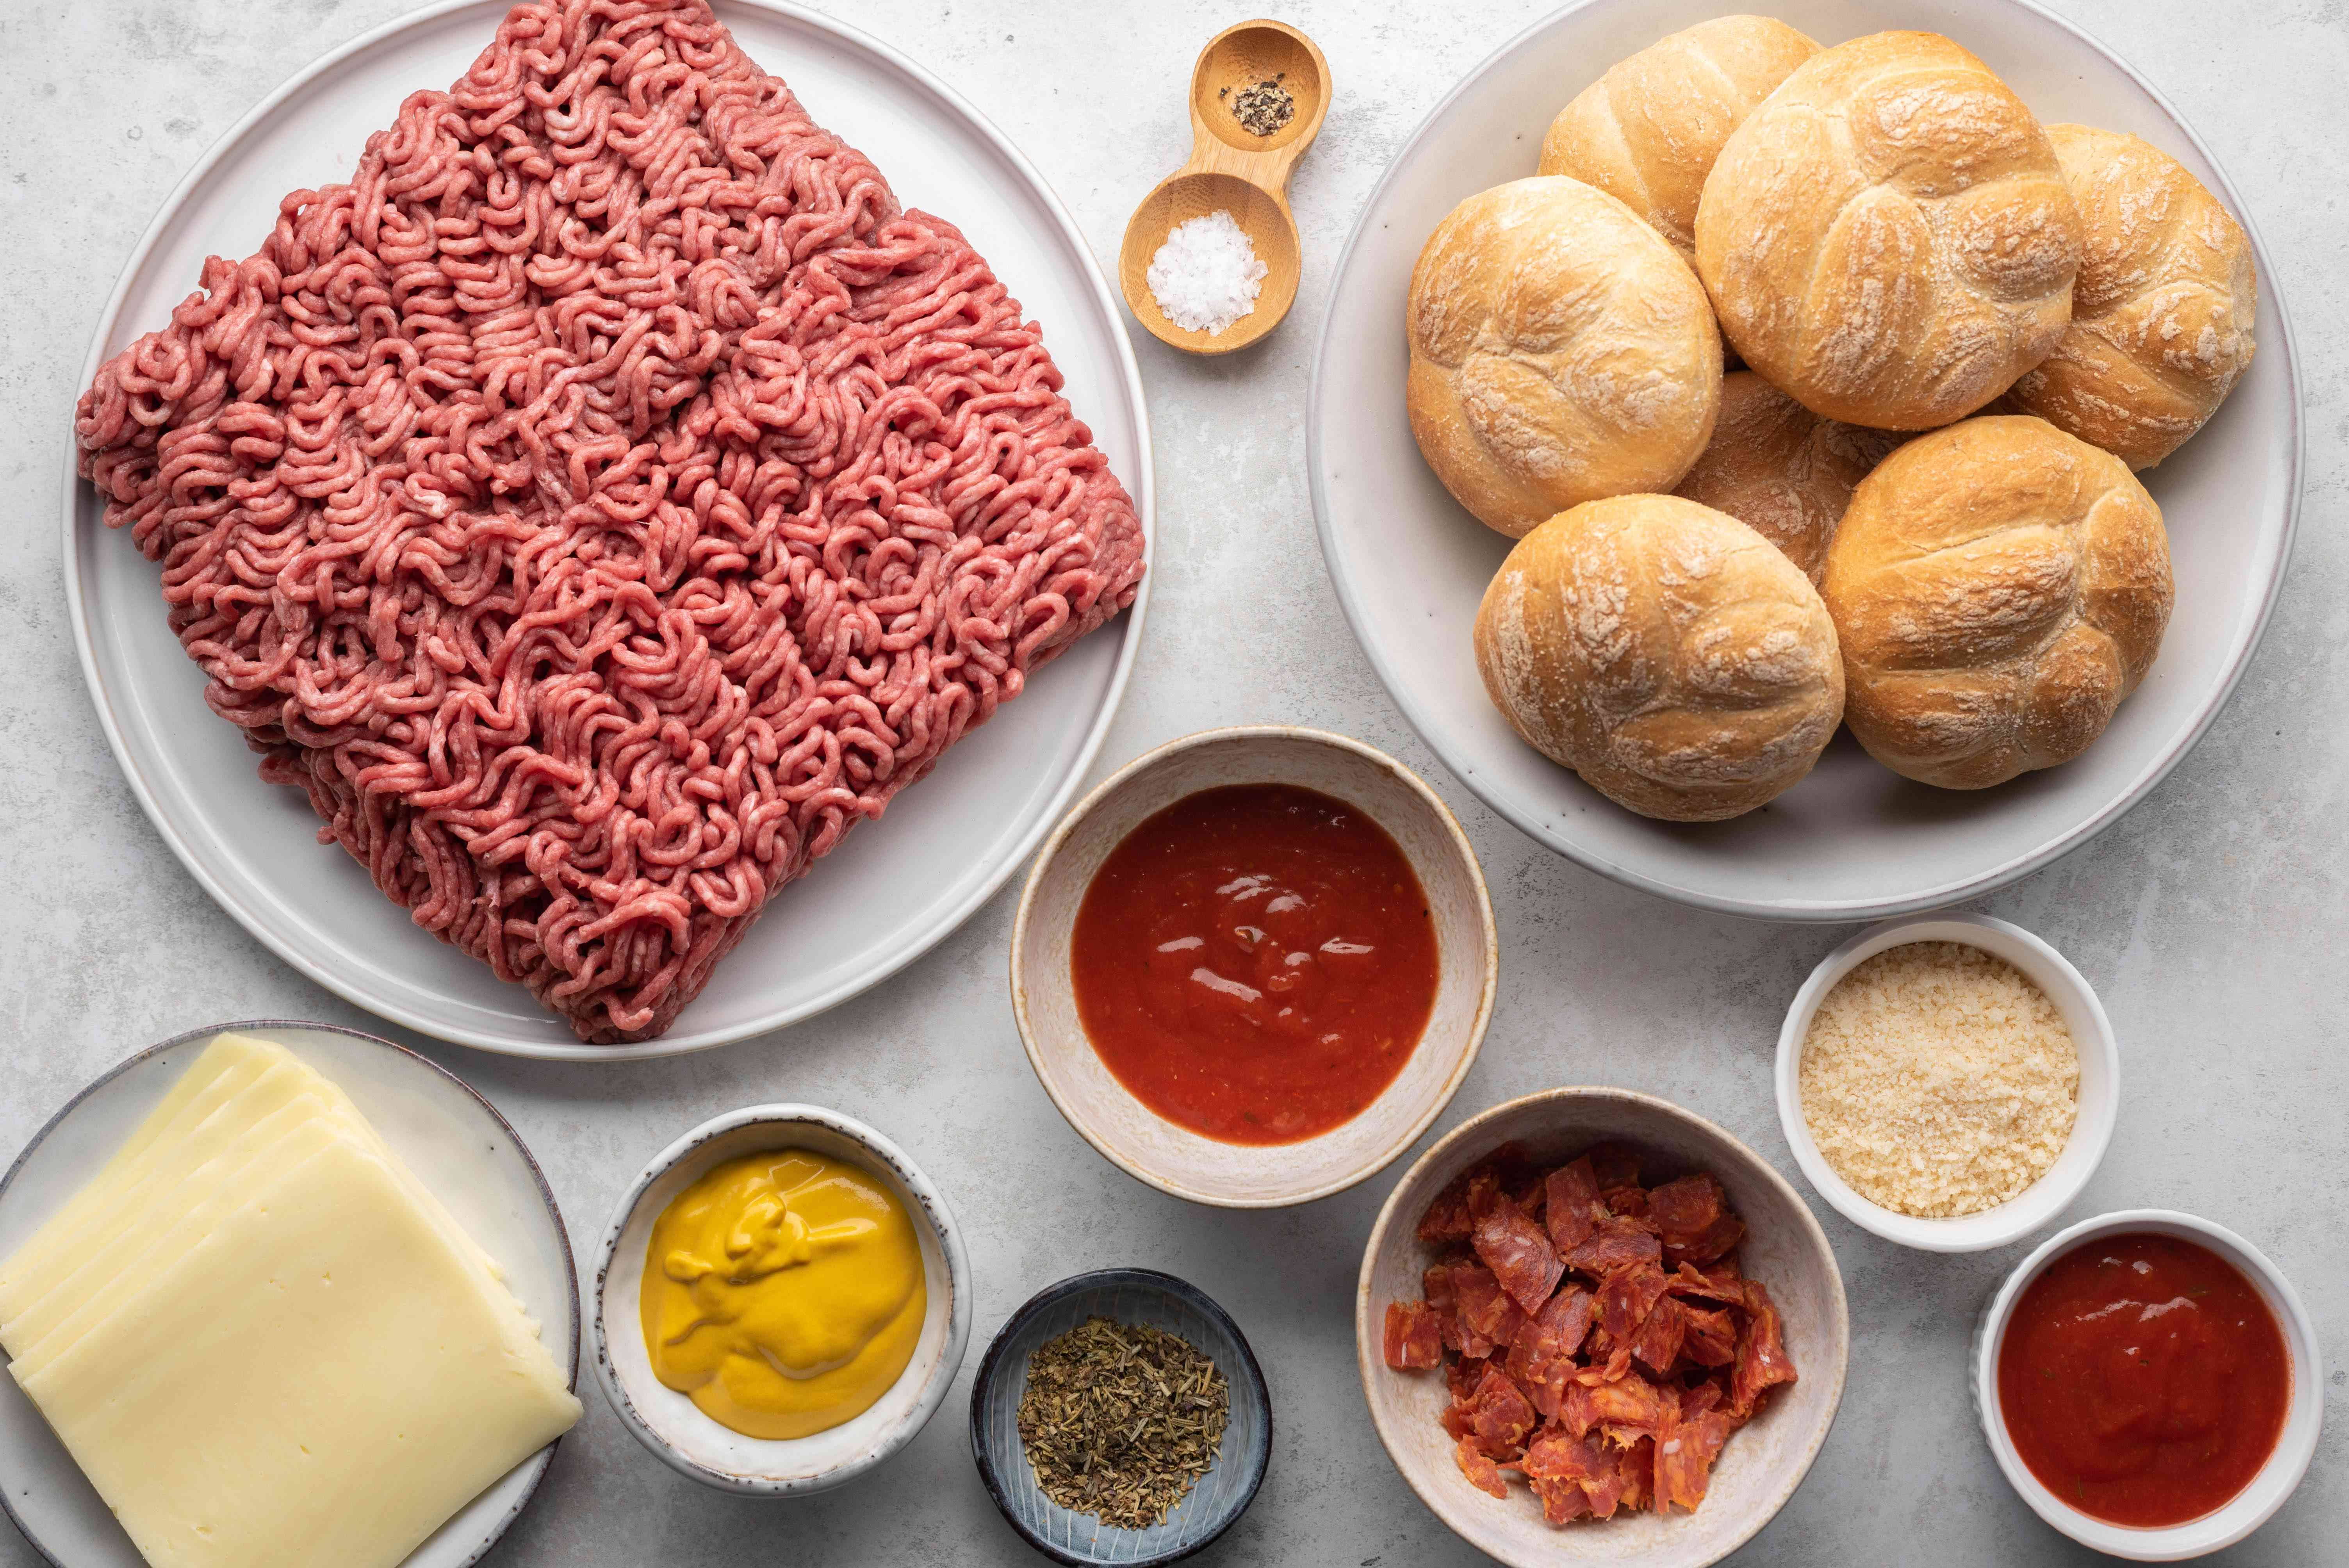 Ingredients for stuffed pizza burgers